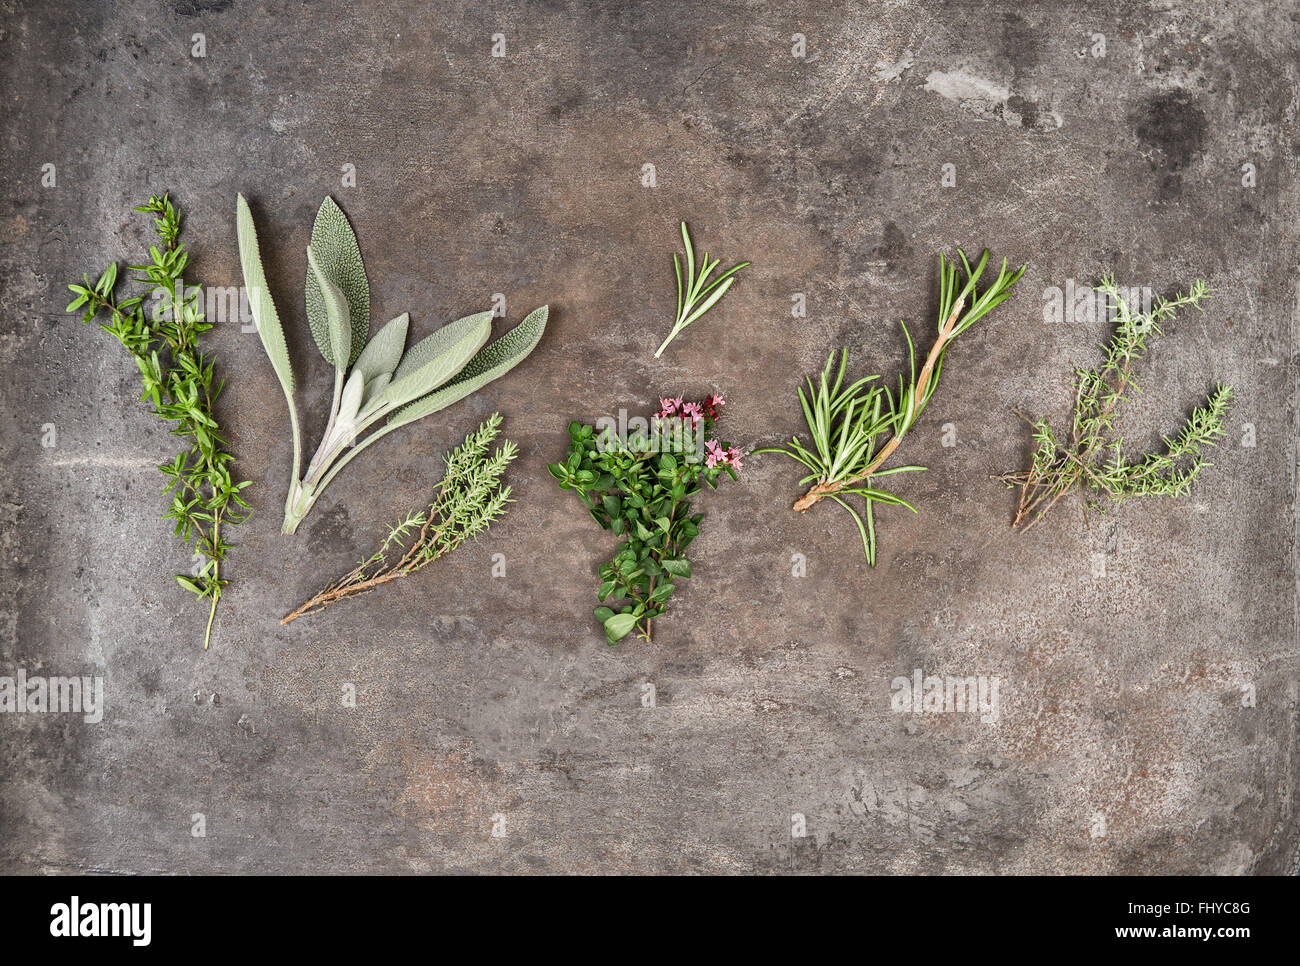 Herbs rosemary, sage, thyme, savory on rustic background - Stock Image